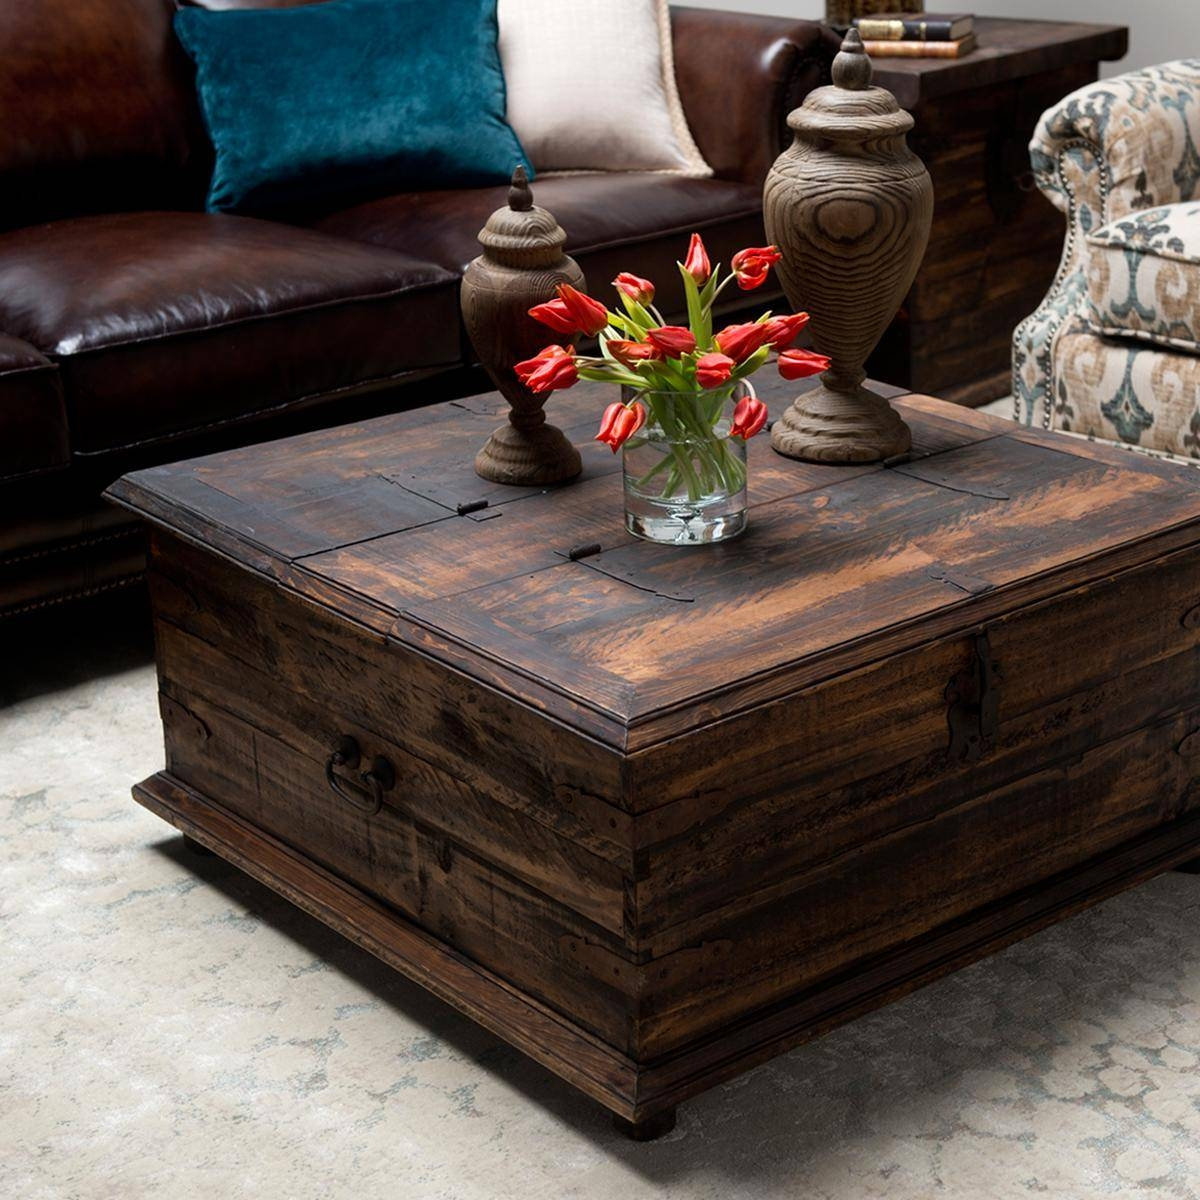 Furniture: Unique Rustic Coffee Table For Elegant Living Room for Dark Wood Square Coffee Tables (Image 20 of 30)